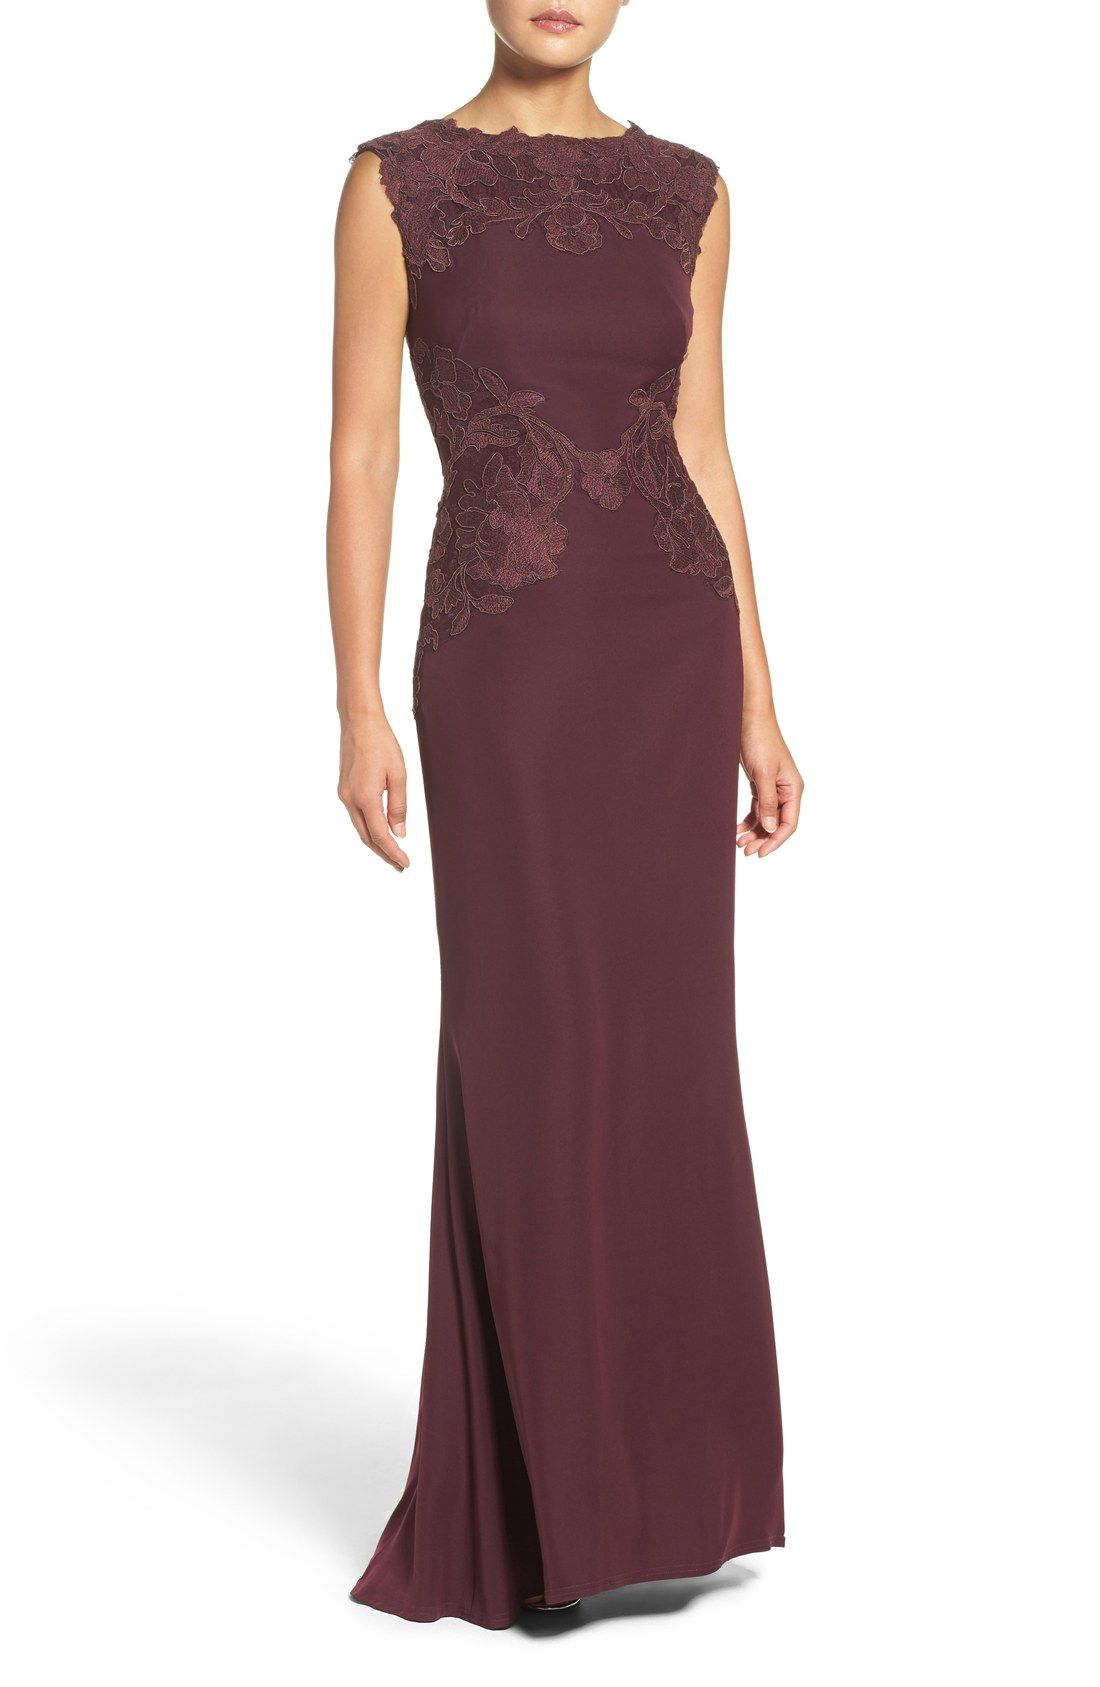 Mother Of The Bride Or Groom Dresses In 2020 Mother Of